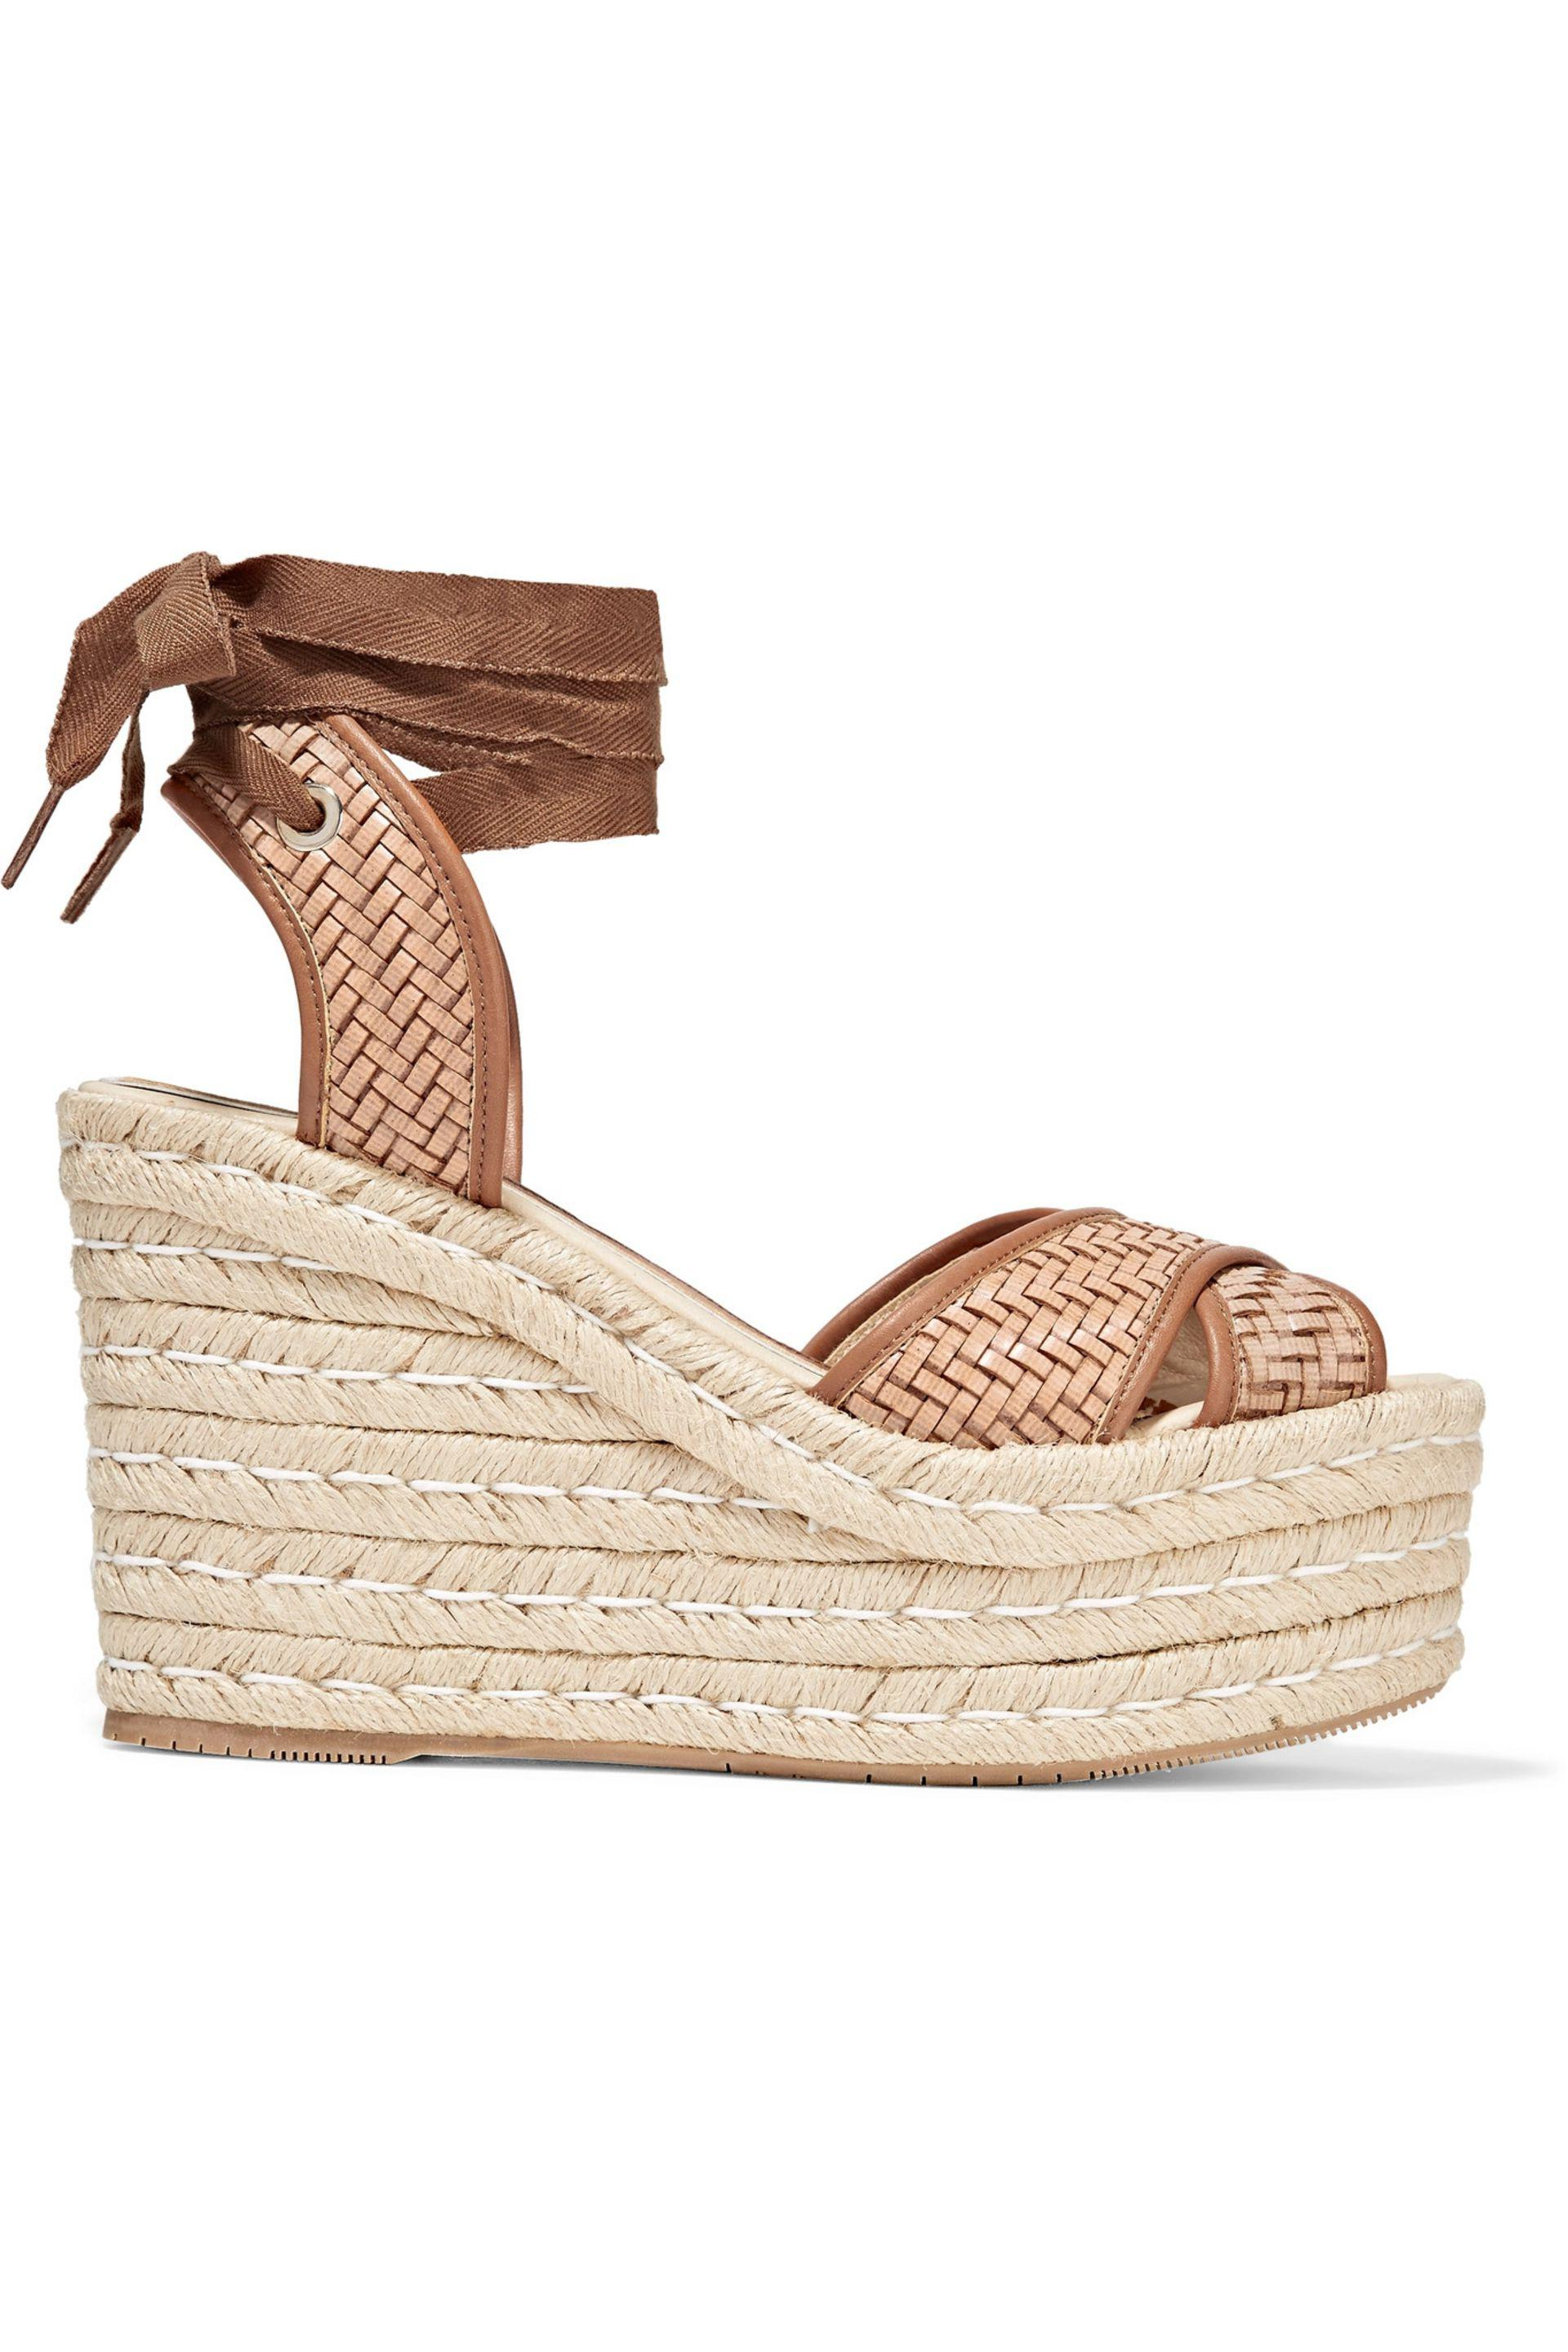 f78b4dbdbb5 Lyst - Paloma Barceló Woven Leather Wedge Espadrille Sandals in Brown